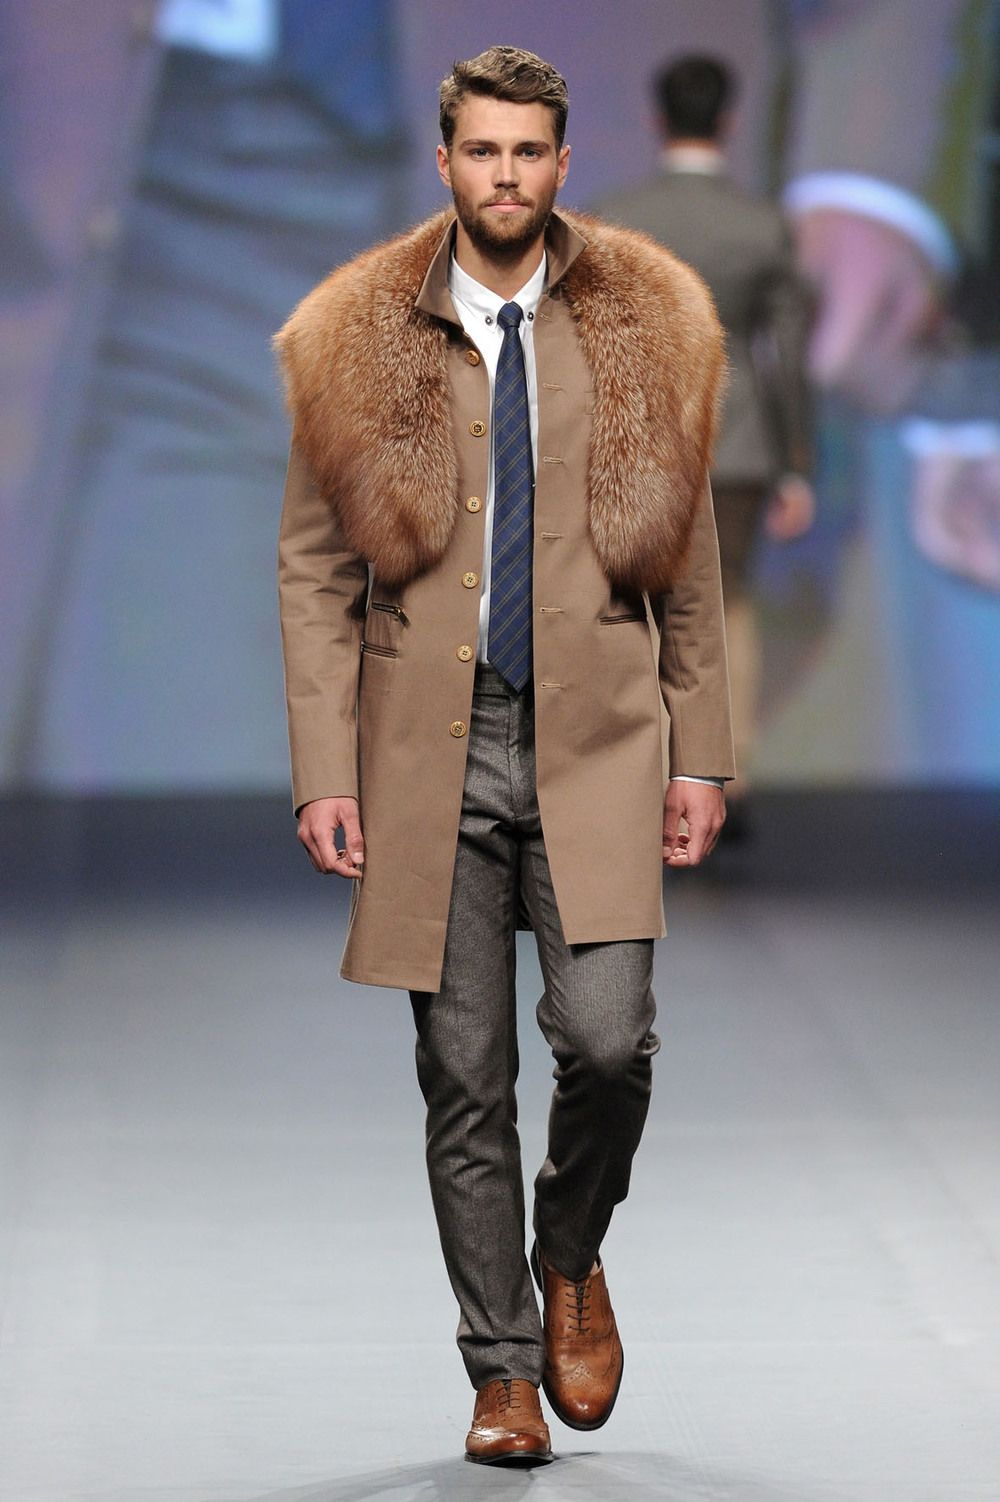 Best Mode Men s Resolution This Year   The Best Men Fashion Style ... 59357b1e25d4